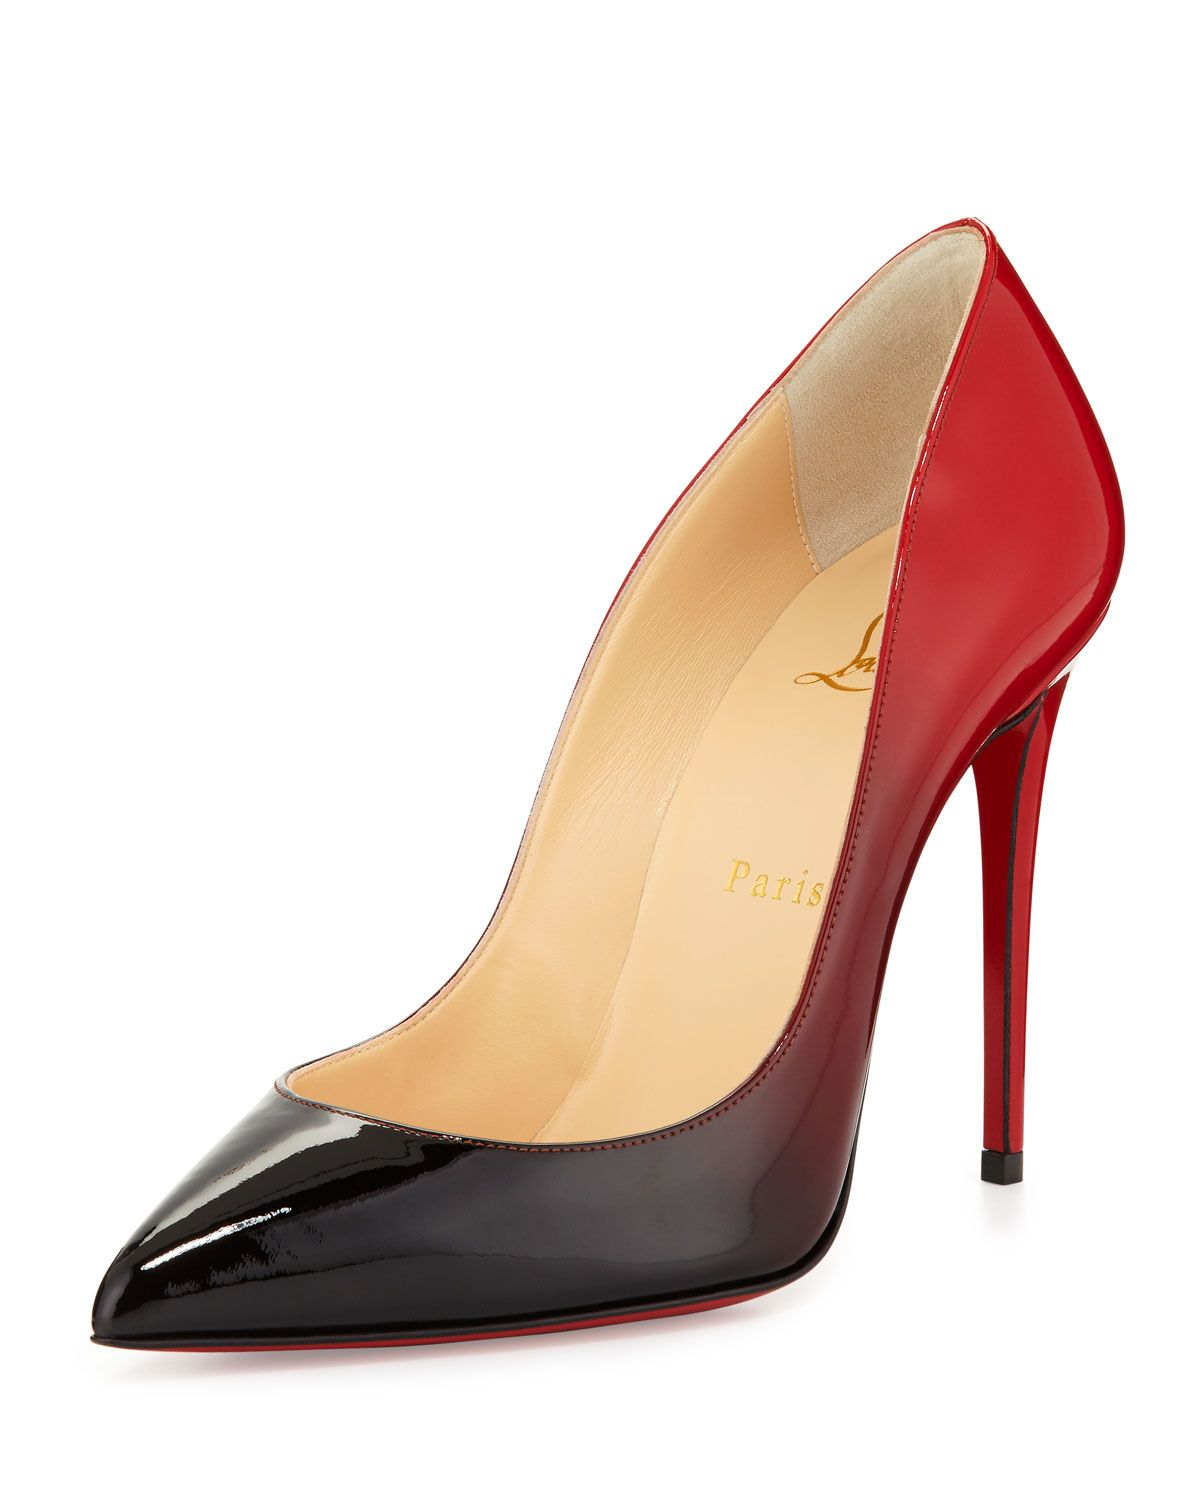 4e68afeb4098 Pigalle Follies Degrade Red Sole Pump